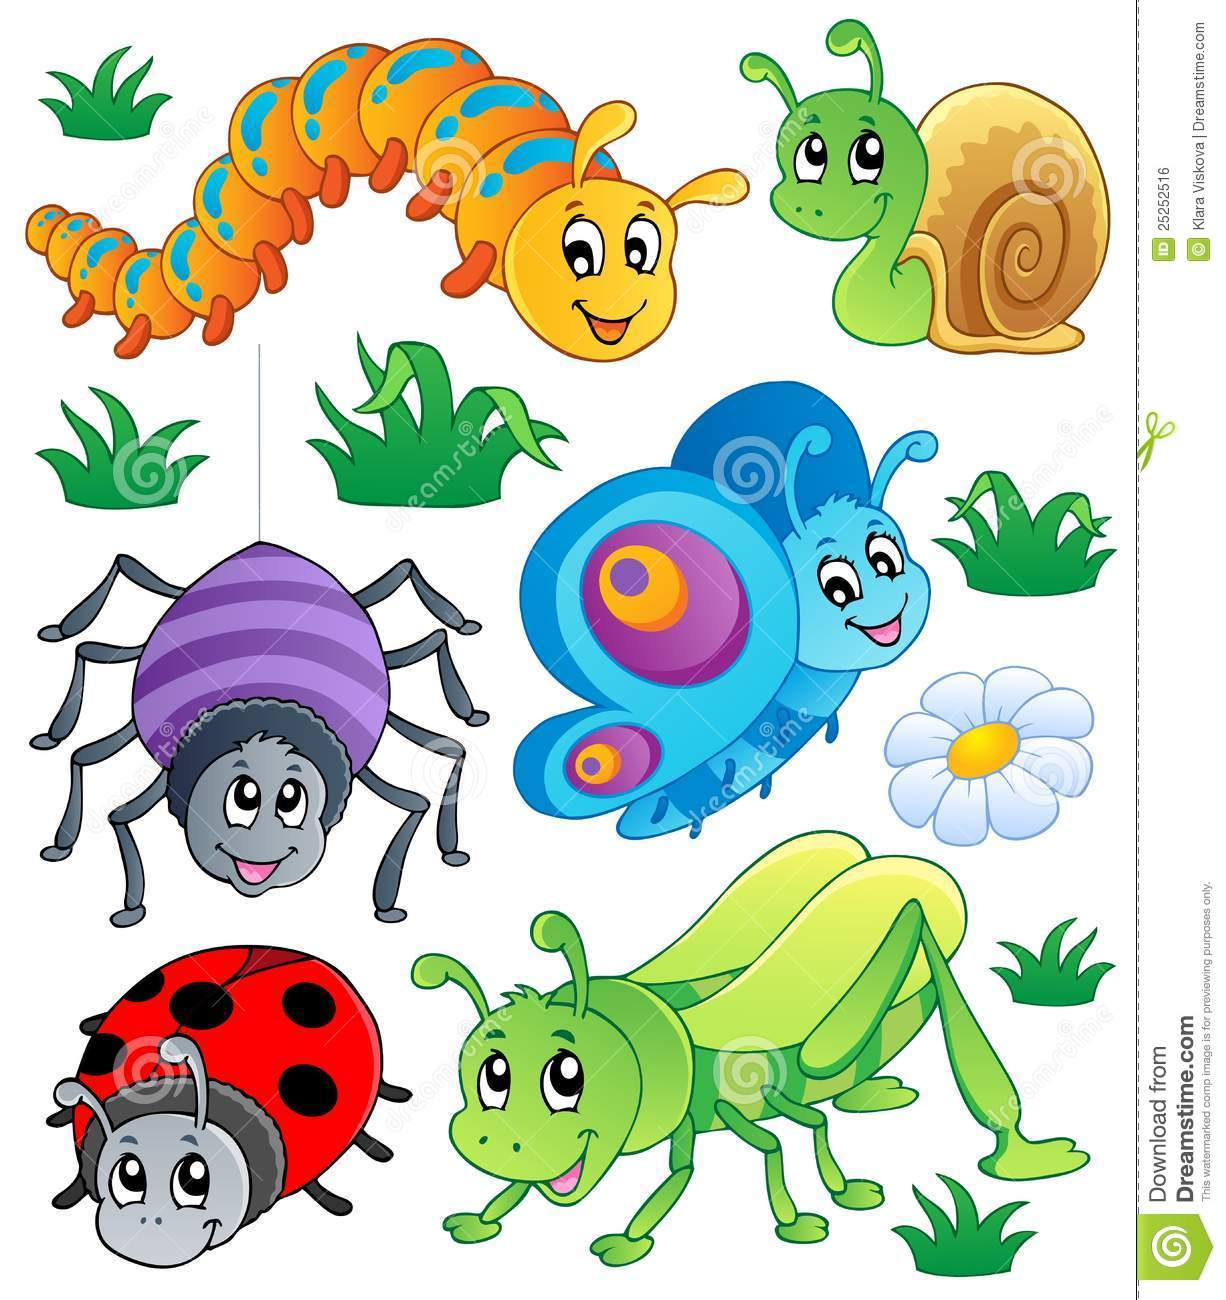 Colouful corn free pnglogocoloring. Cereal clipart cute